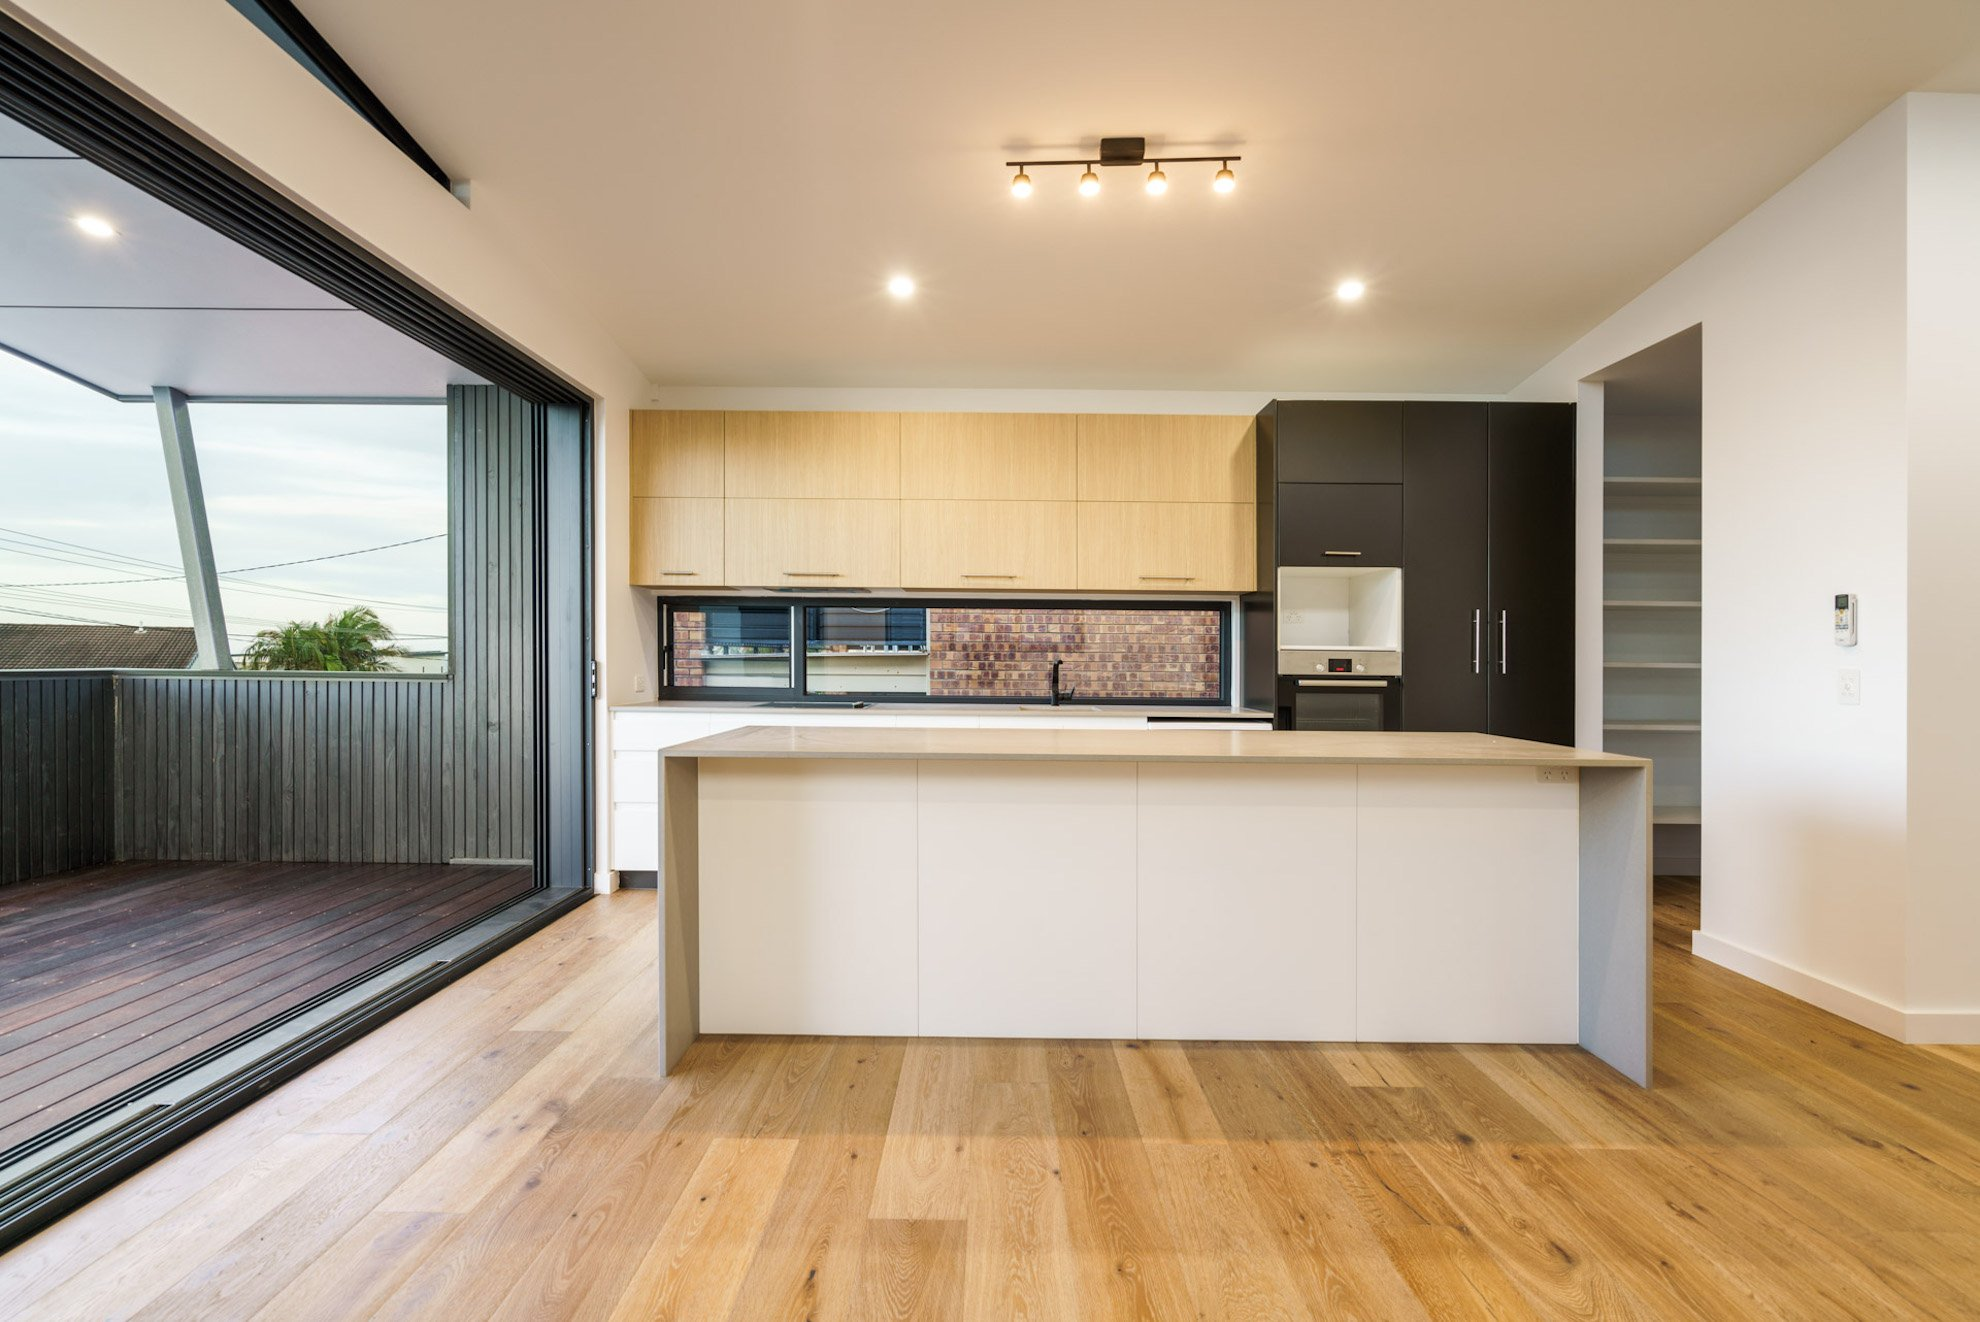 Coolum project by mdesign, a building design practice that operates on the Sunshine Coast.